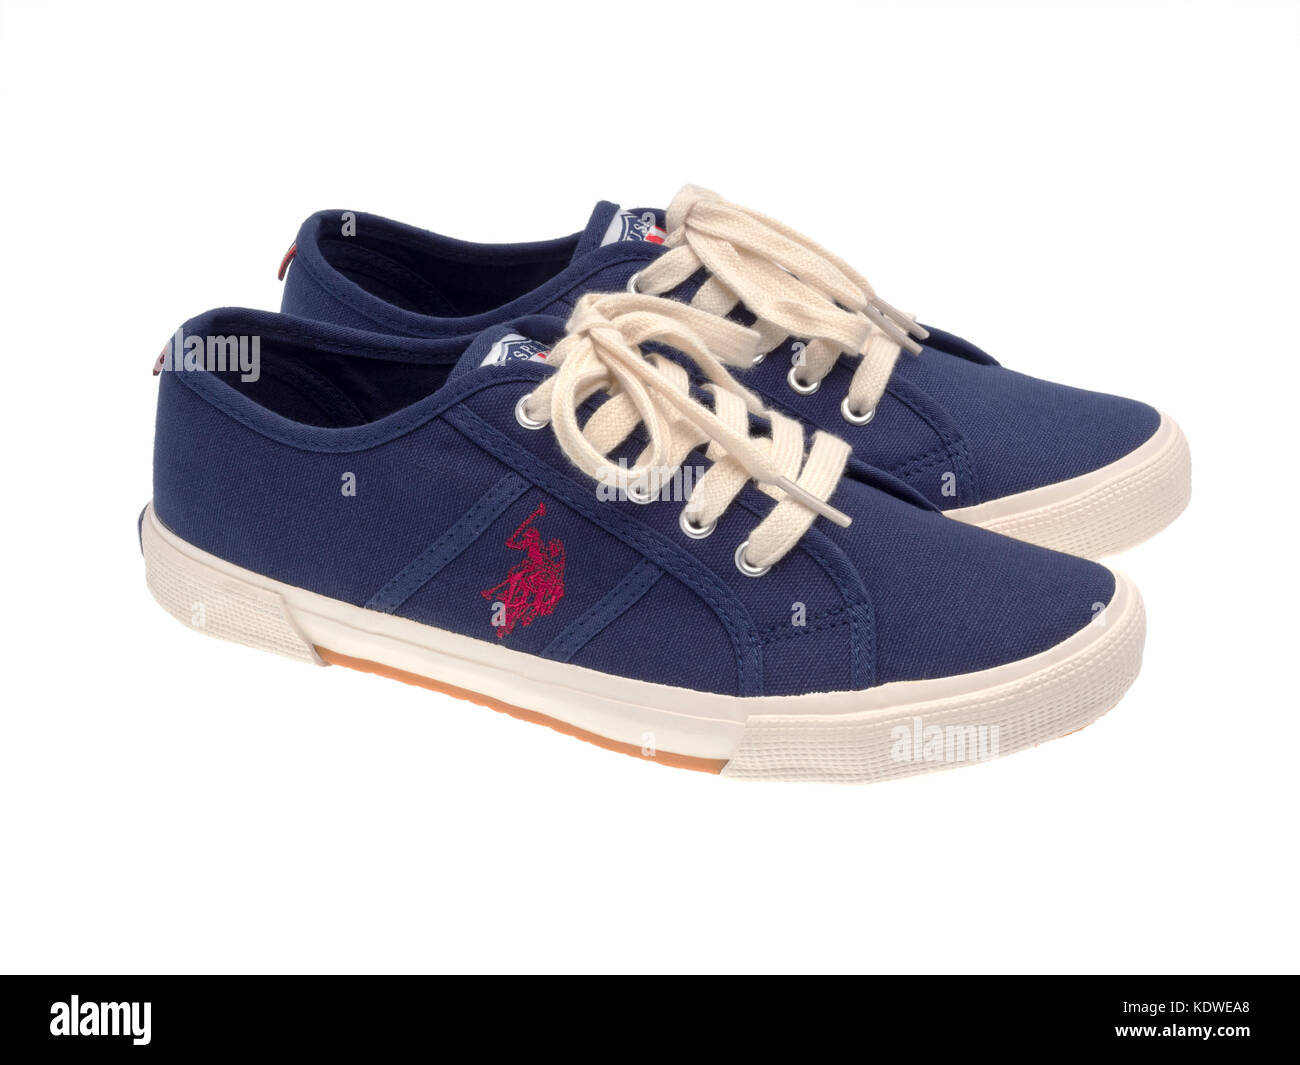 Los Angeles, CA, USA - August 13, 2016: U.S. Polo ASSN. Men Shoes Isolated On White - Stock Image